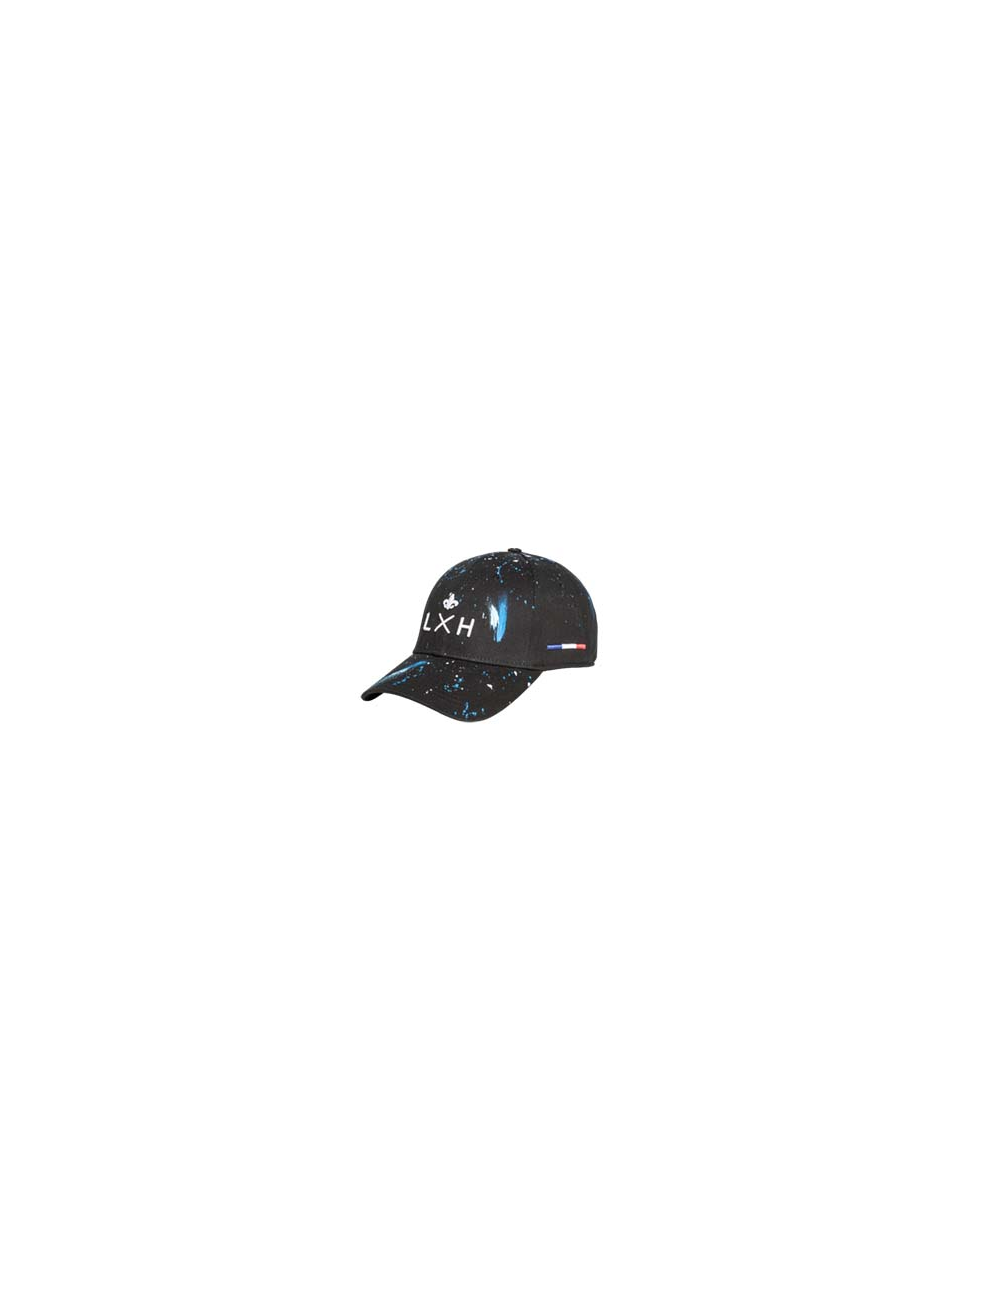 Casquette art French touch LXH - BIG BOSS MEGEVE